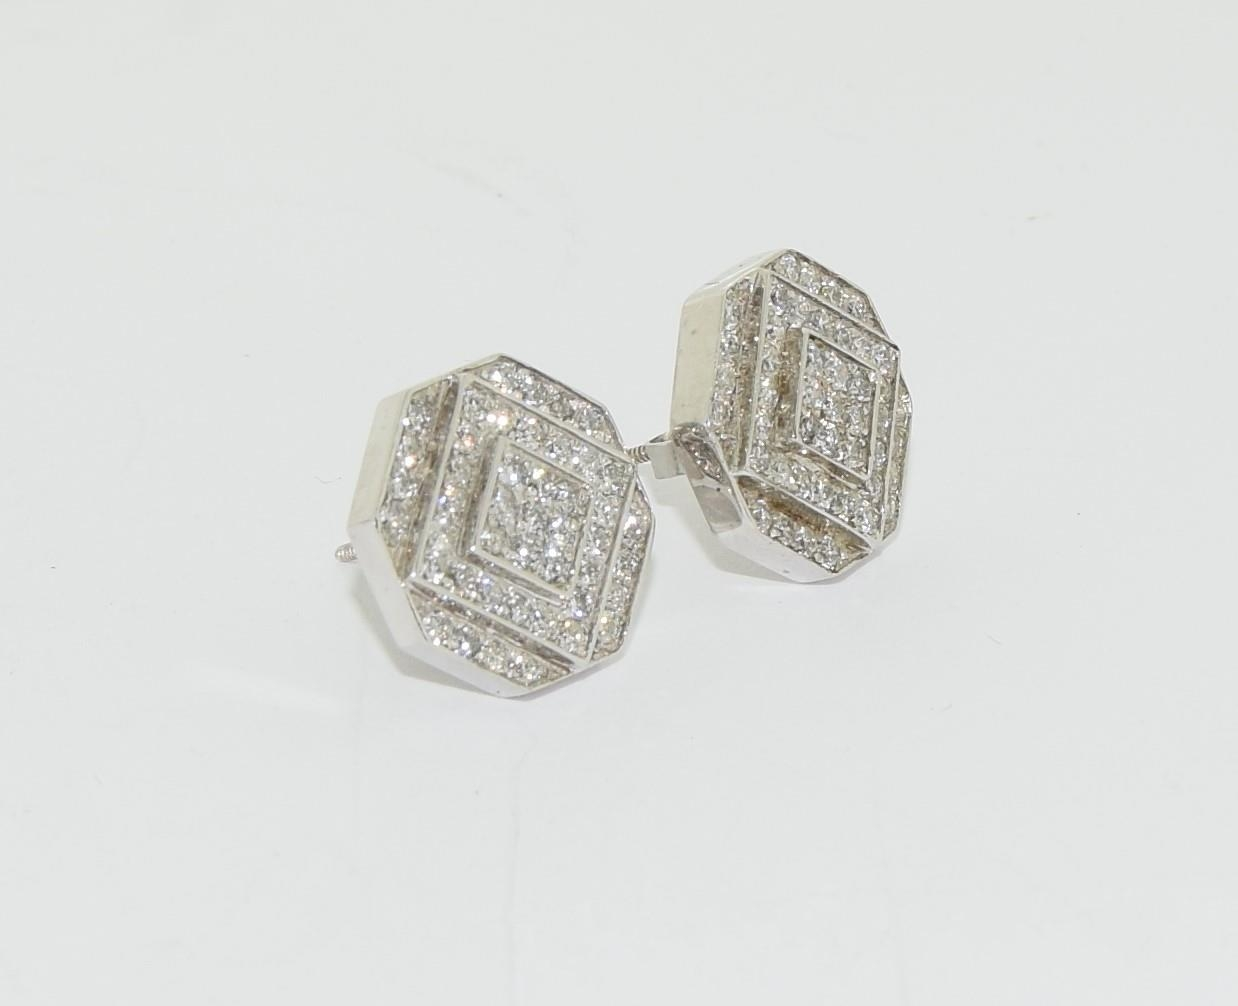 Pair of 14ct white gold cluster diamond earrings of approx 1ct